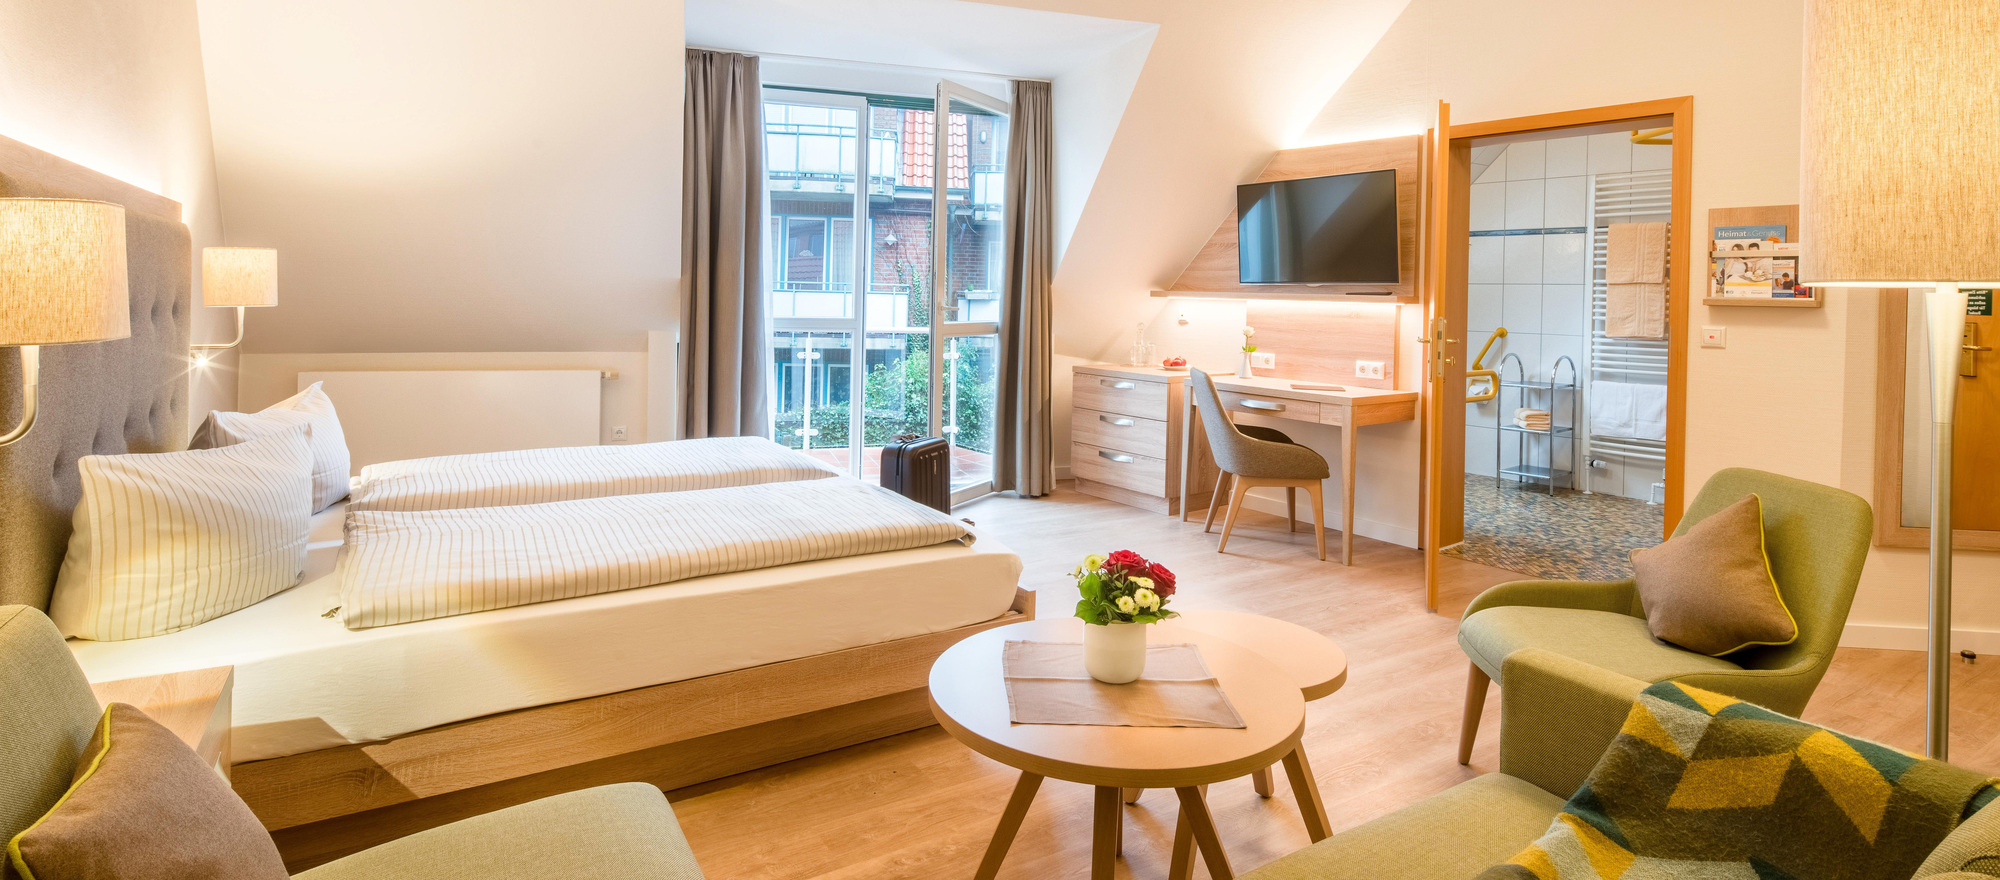 Bright and modern rooms at the 4-star hotel Ringhotel Altes Zollhaus in Horumersiel